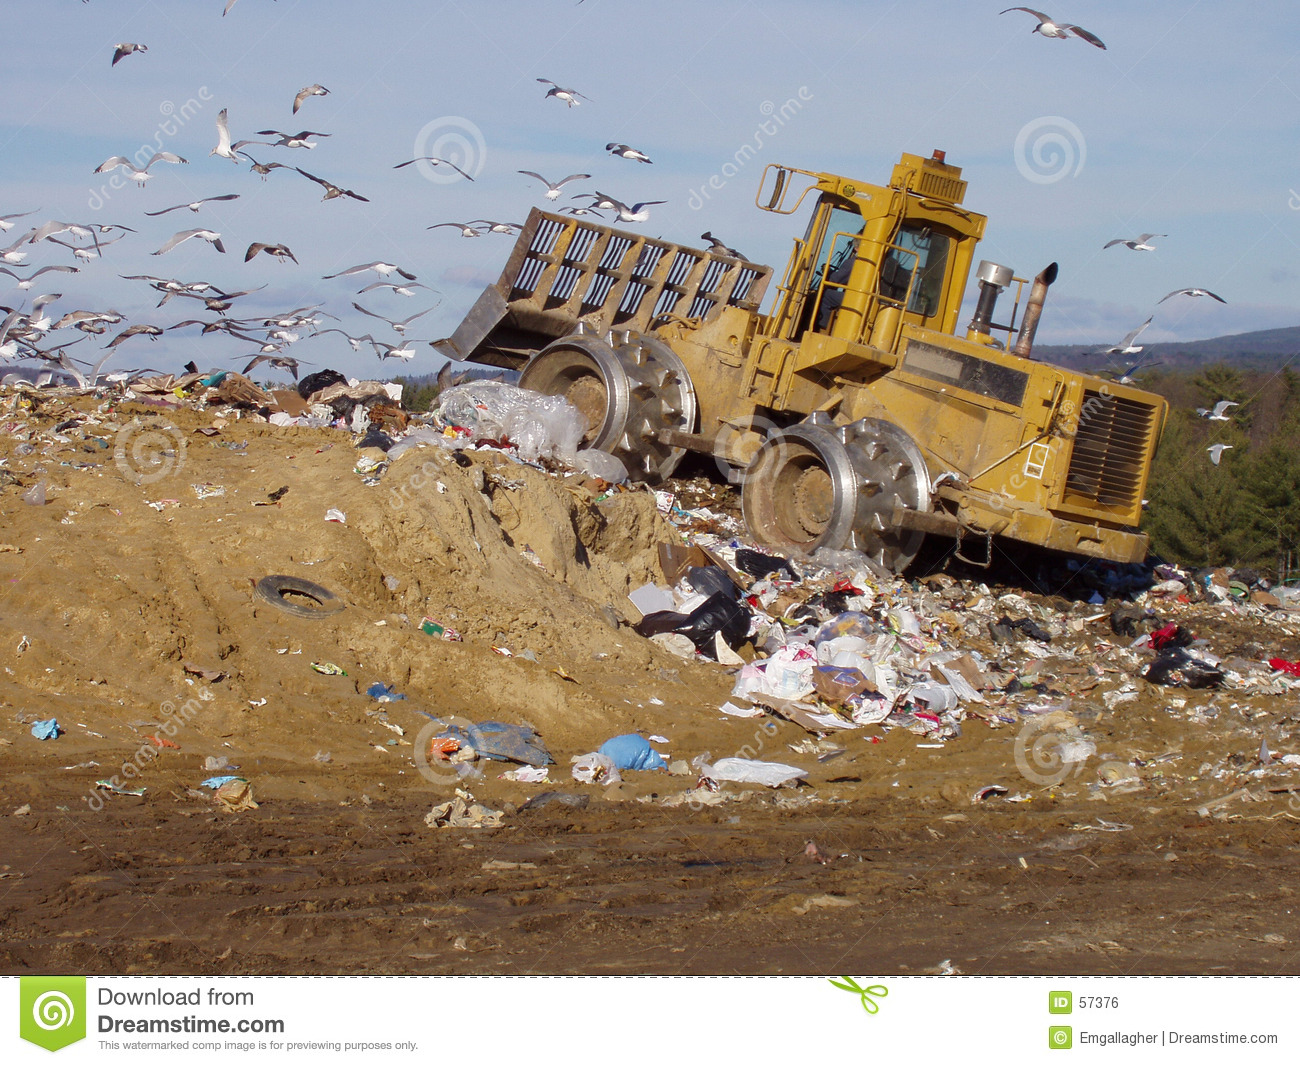 Landfills With Tractors : Landfill and tractor in desert stock photography